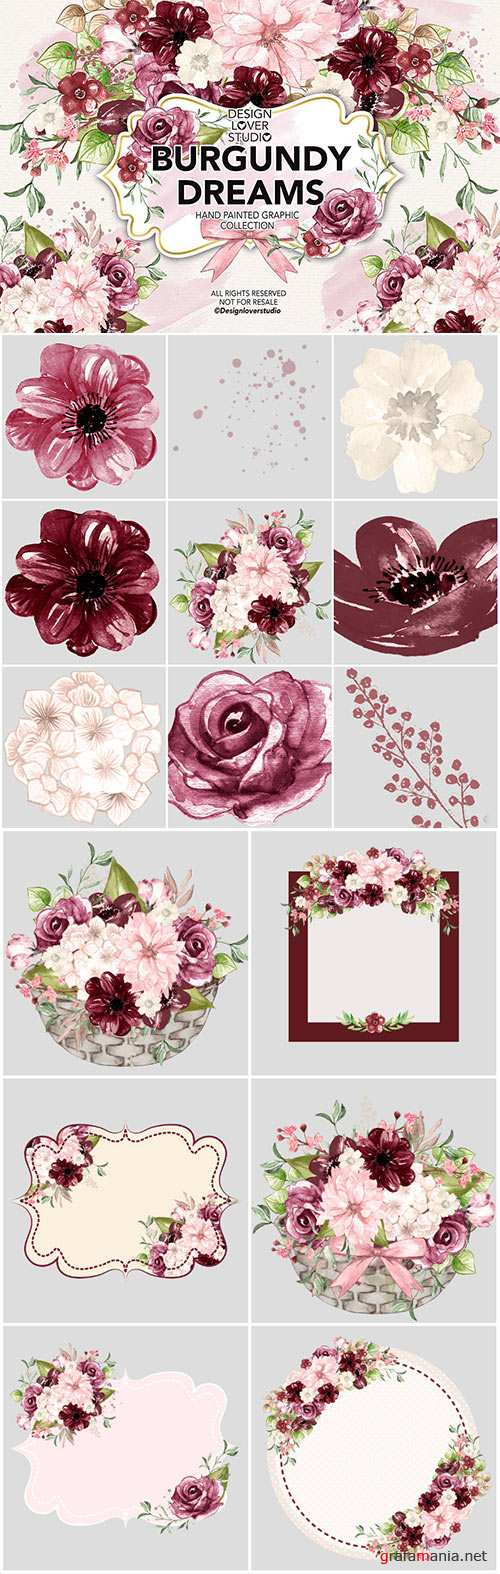 Watercolor BURGUNDY DREAMS design